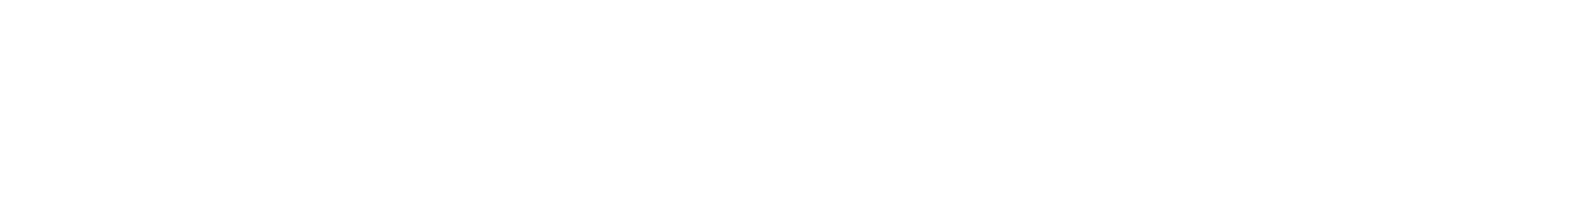 College of Arts and Sciences, Department of Communication, The University of Oklahoma website wordmark